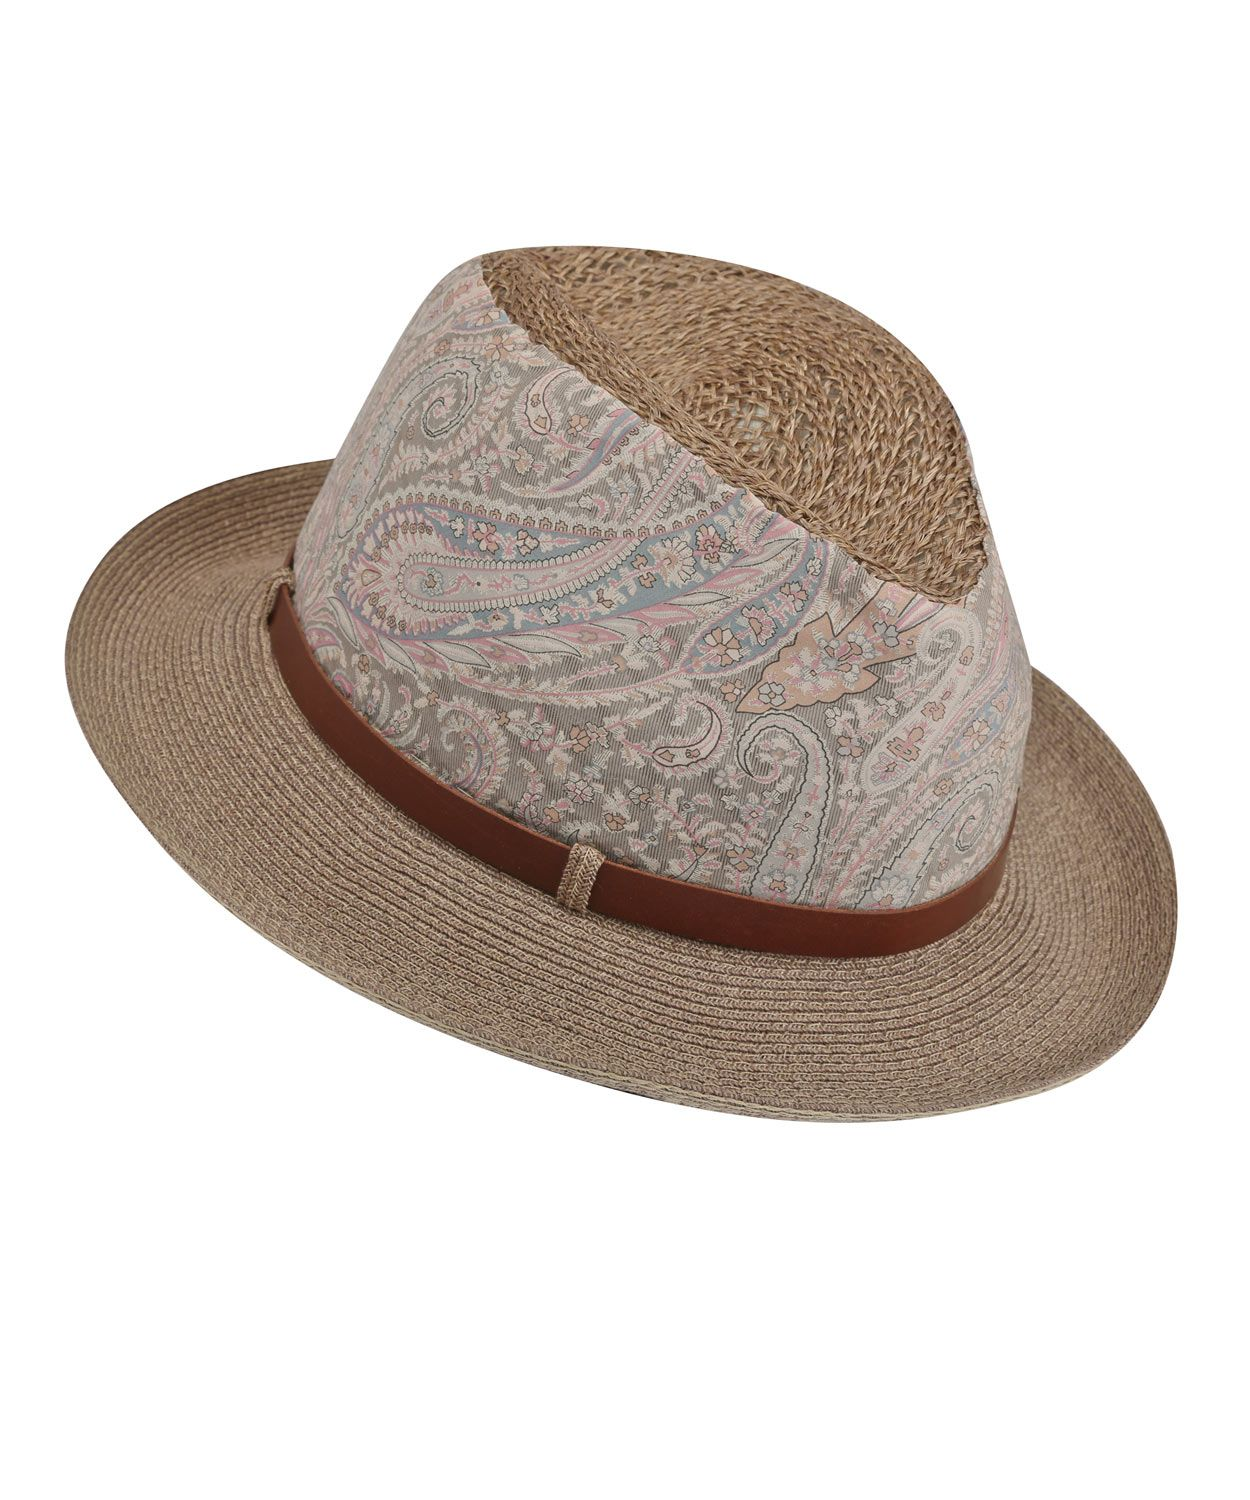 038d2d3860516e Beige Belted Paisley Panama Hat, Grevi. Shop more hats from the Grevi  collection online at Liberty.co.uk